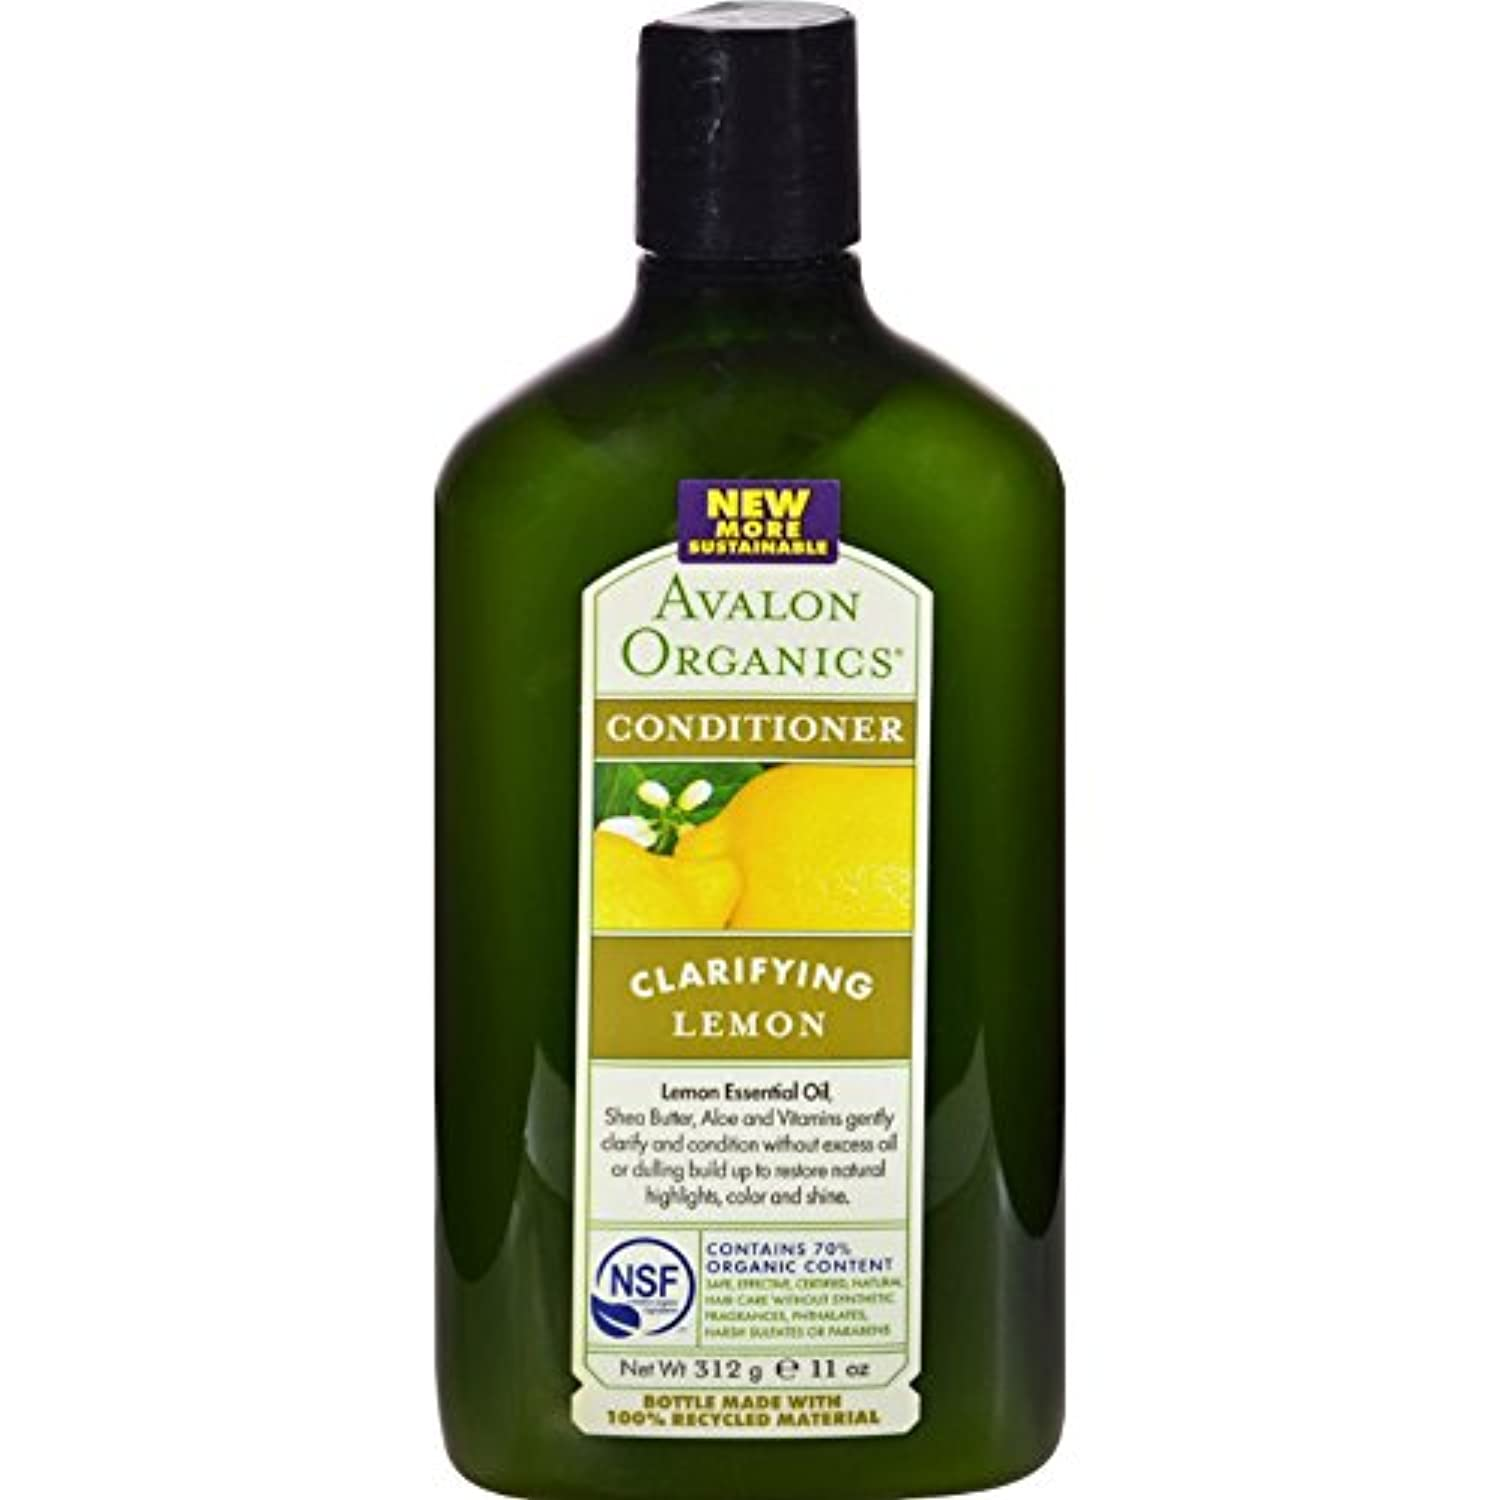 Avalon Organics Clarifying Conditioner Lemon - 11 fl oz